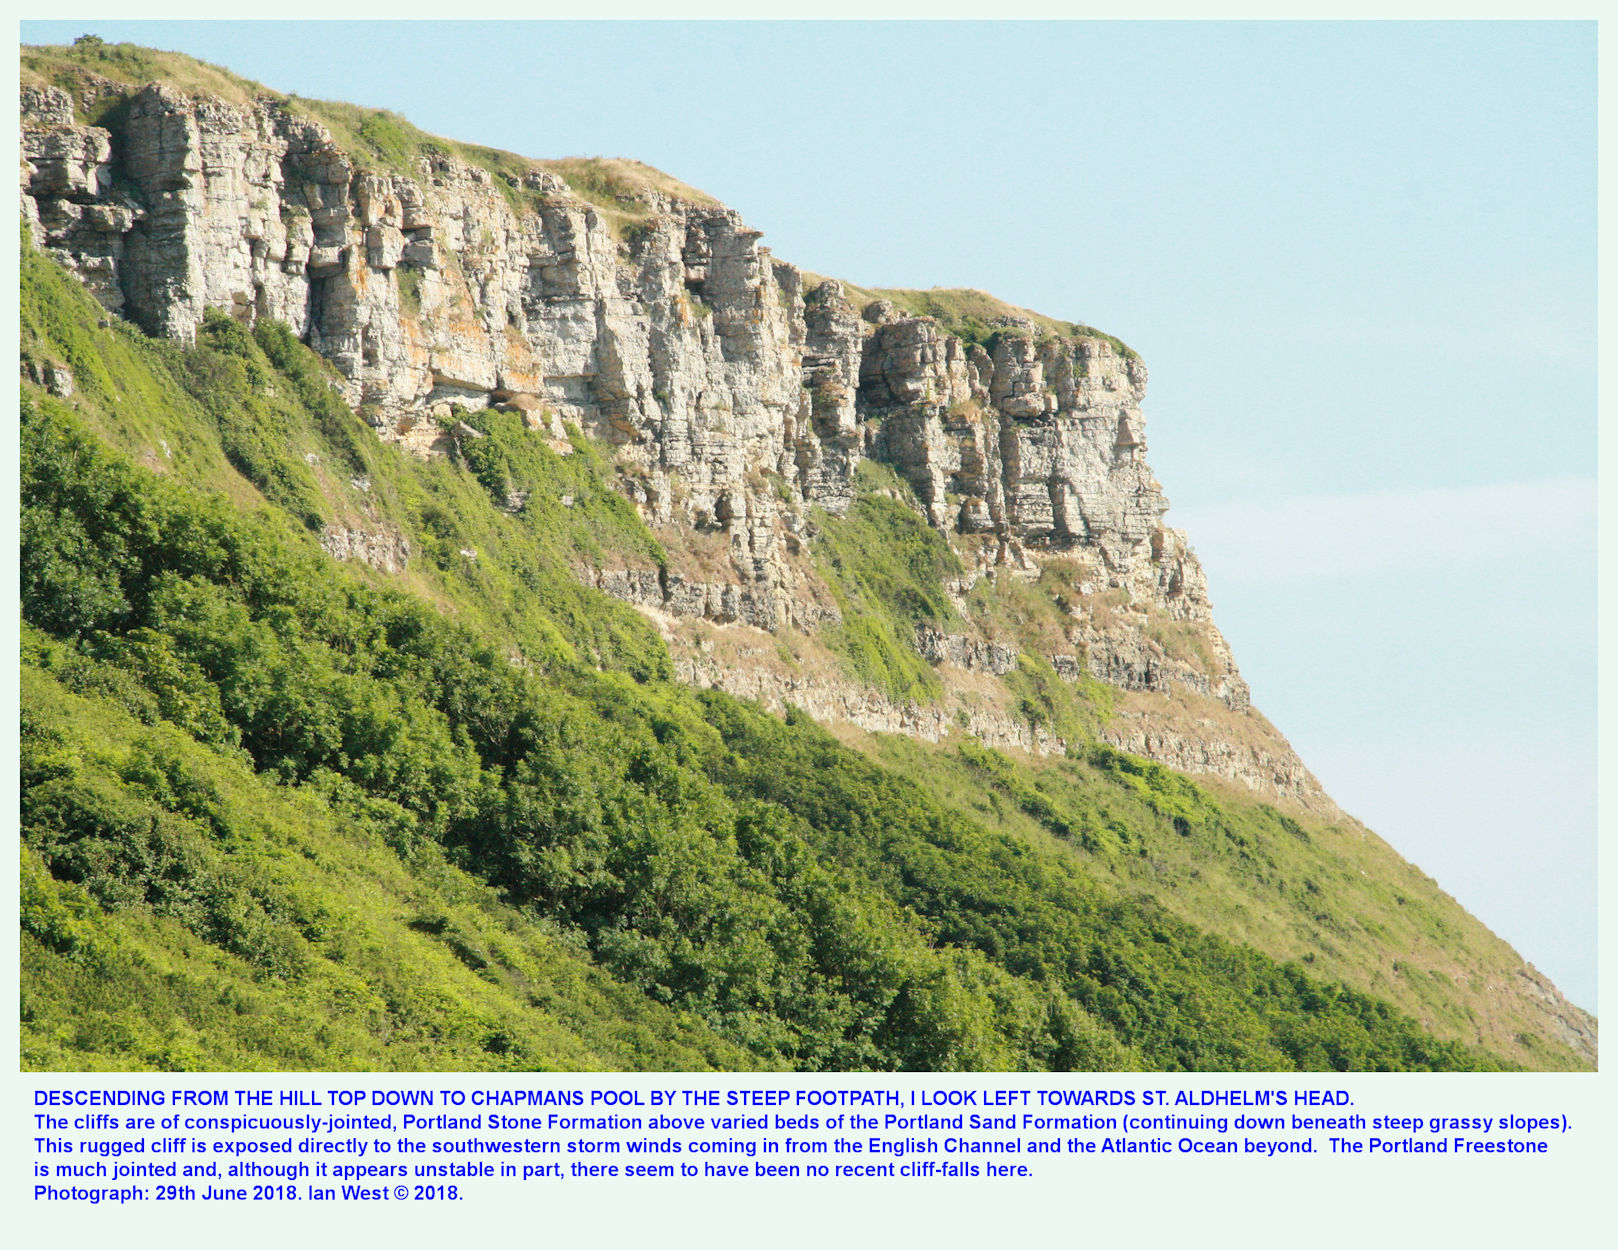 The vertical wall of Portland Stone in the upper cliff of St. Aldhelms Head adjacent to Chapman's Pool, Dorset, July 2018